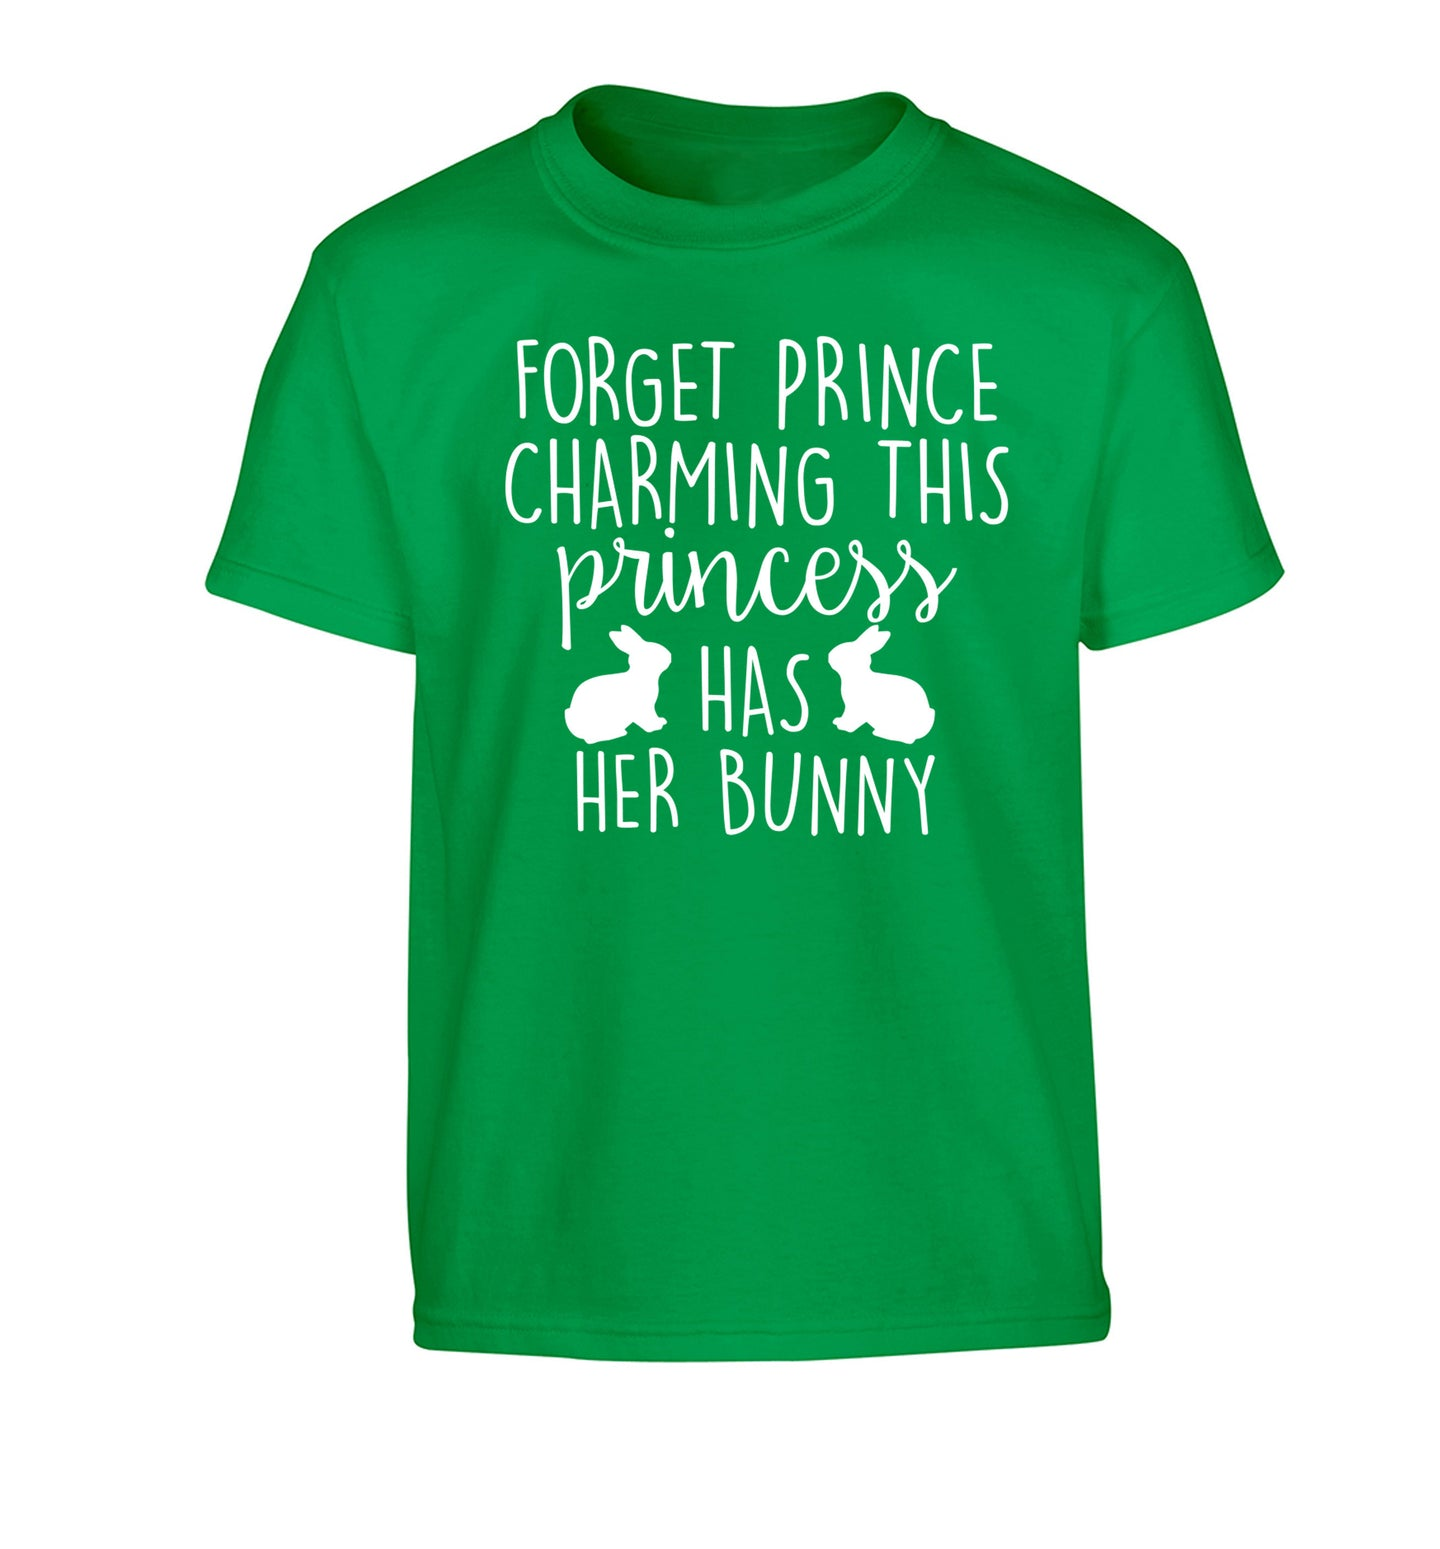 Forget prince charming this princess has her bunny Children's green Tshirt 12-14 Years